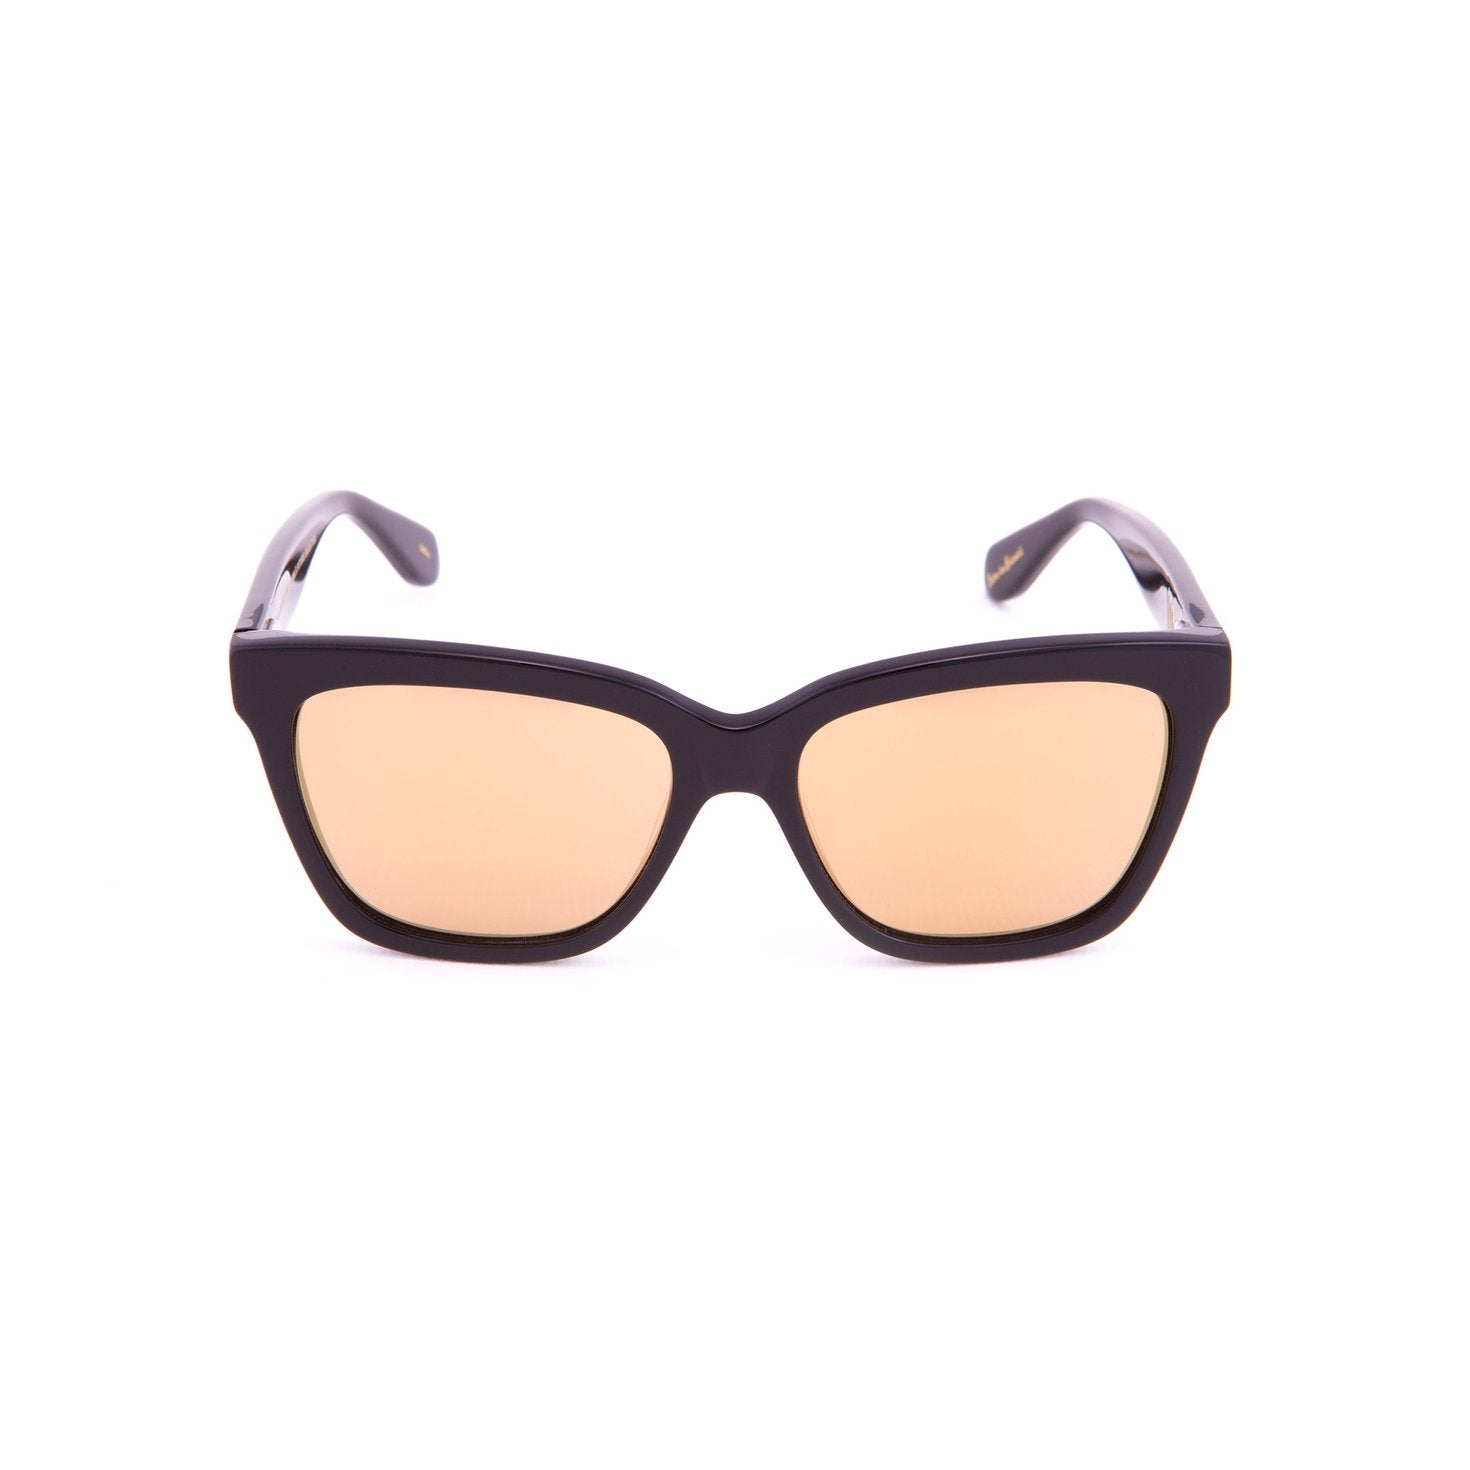 Mohala Eyewear - Mei Mirrored Lenses - Black Lava/Gold